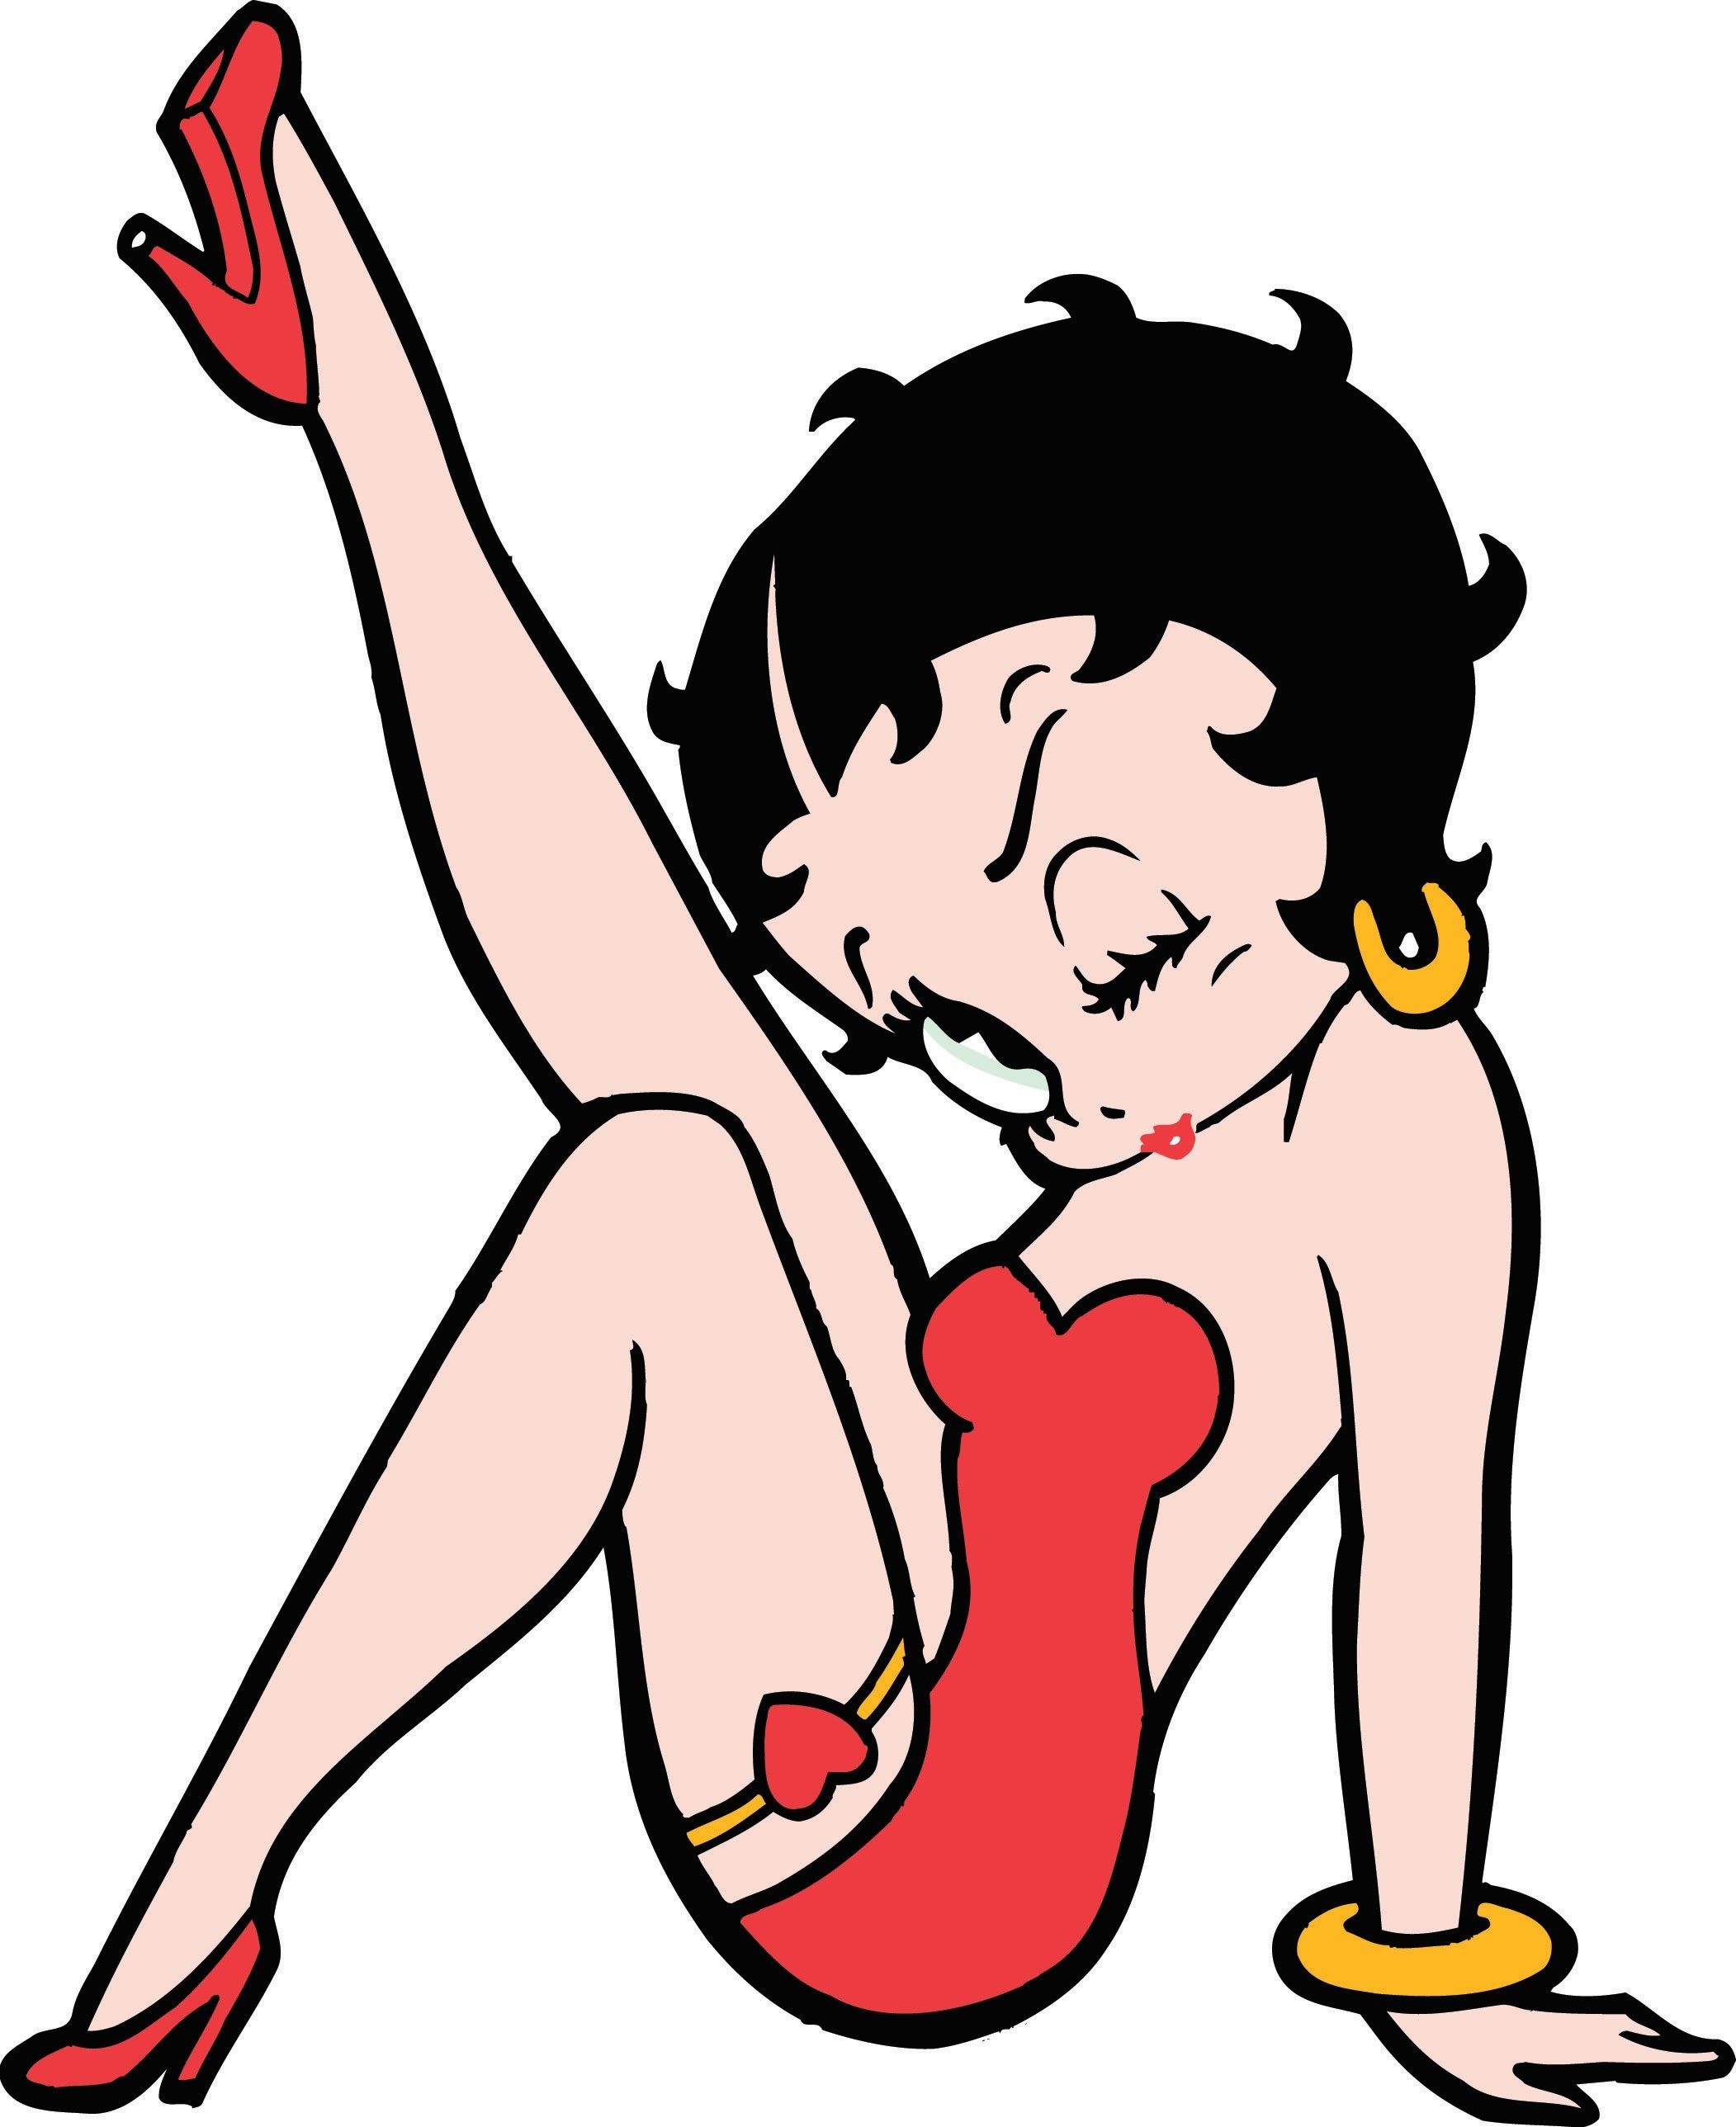 Betty Boop Wallpaper For Phone (41+ Images